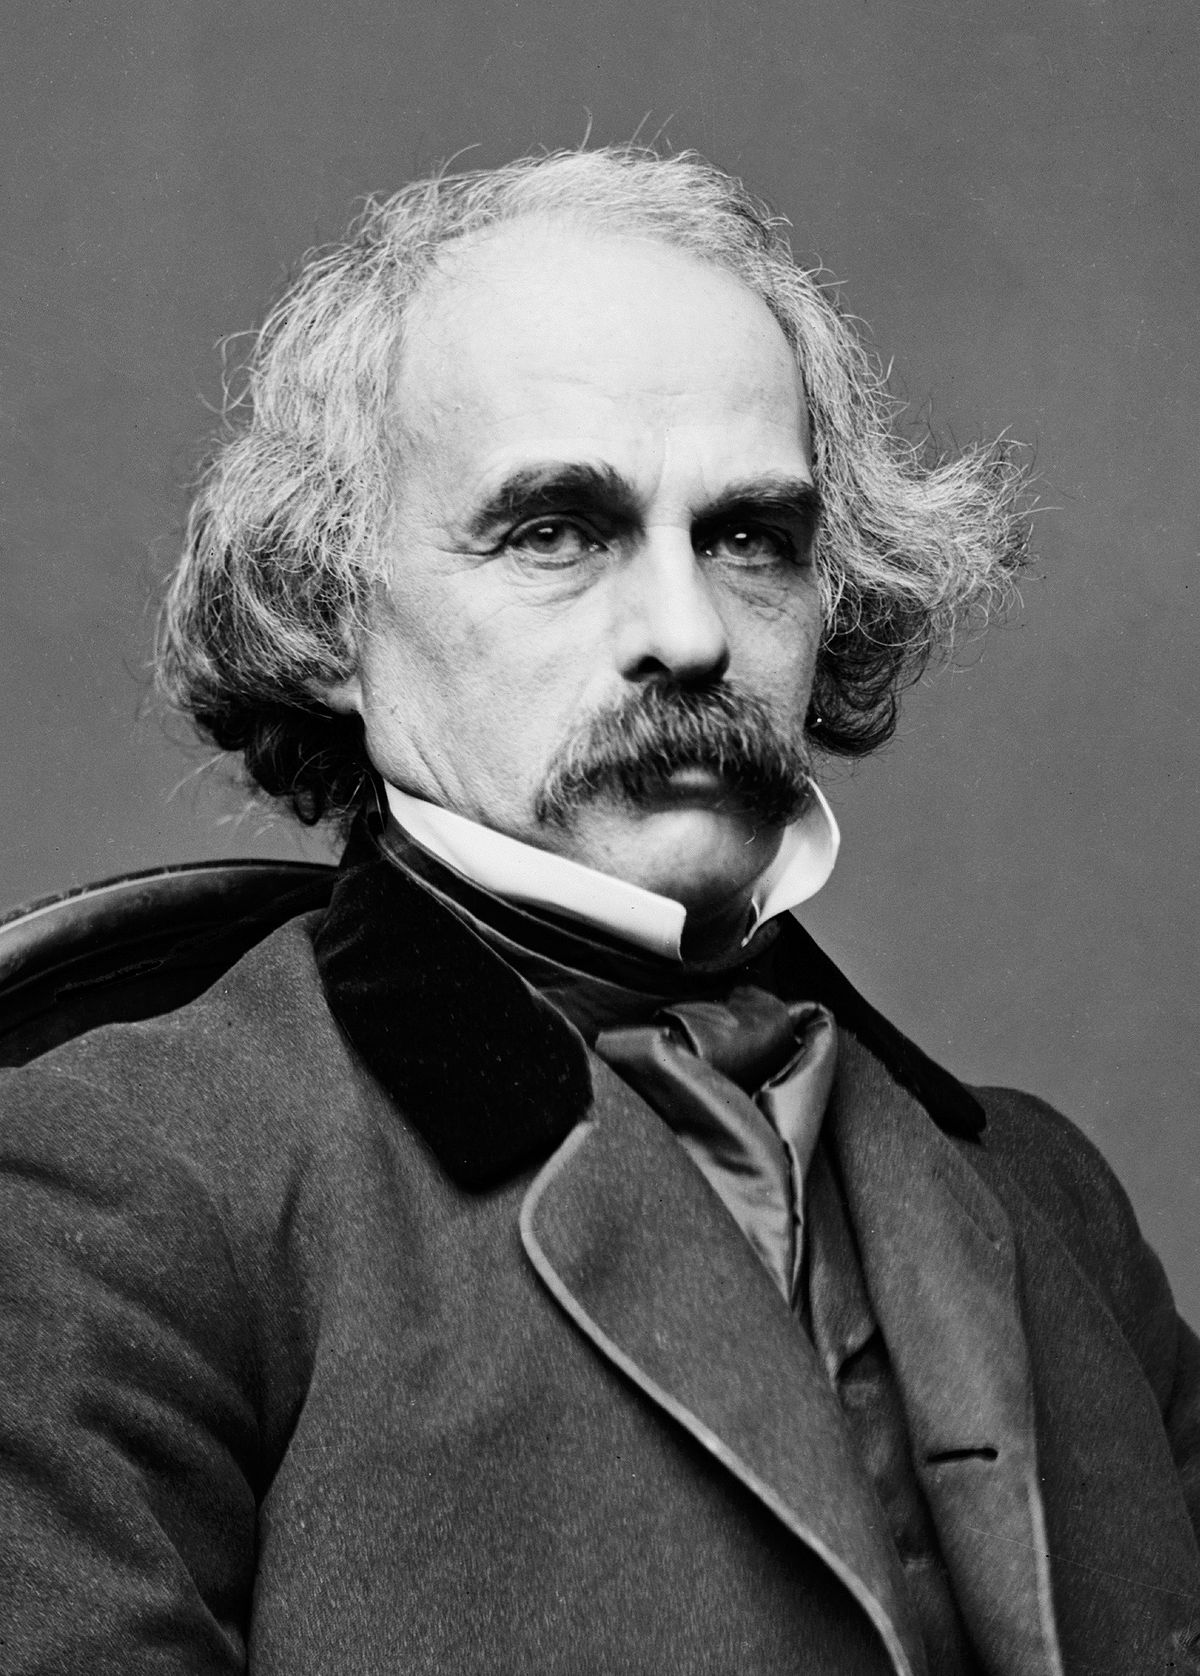 Author of The Scarlet Letter Nathaniel Hawthorne